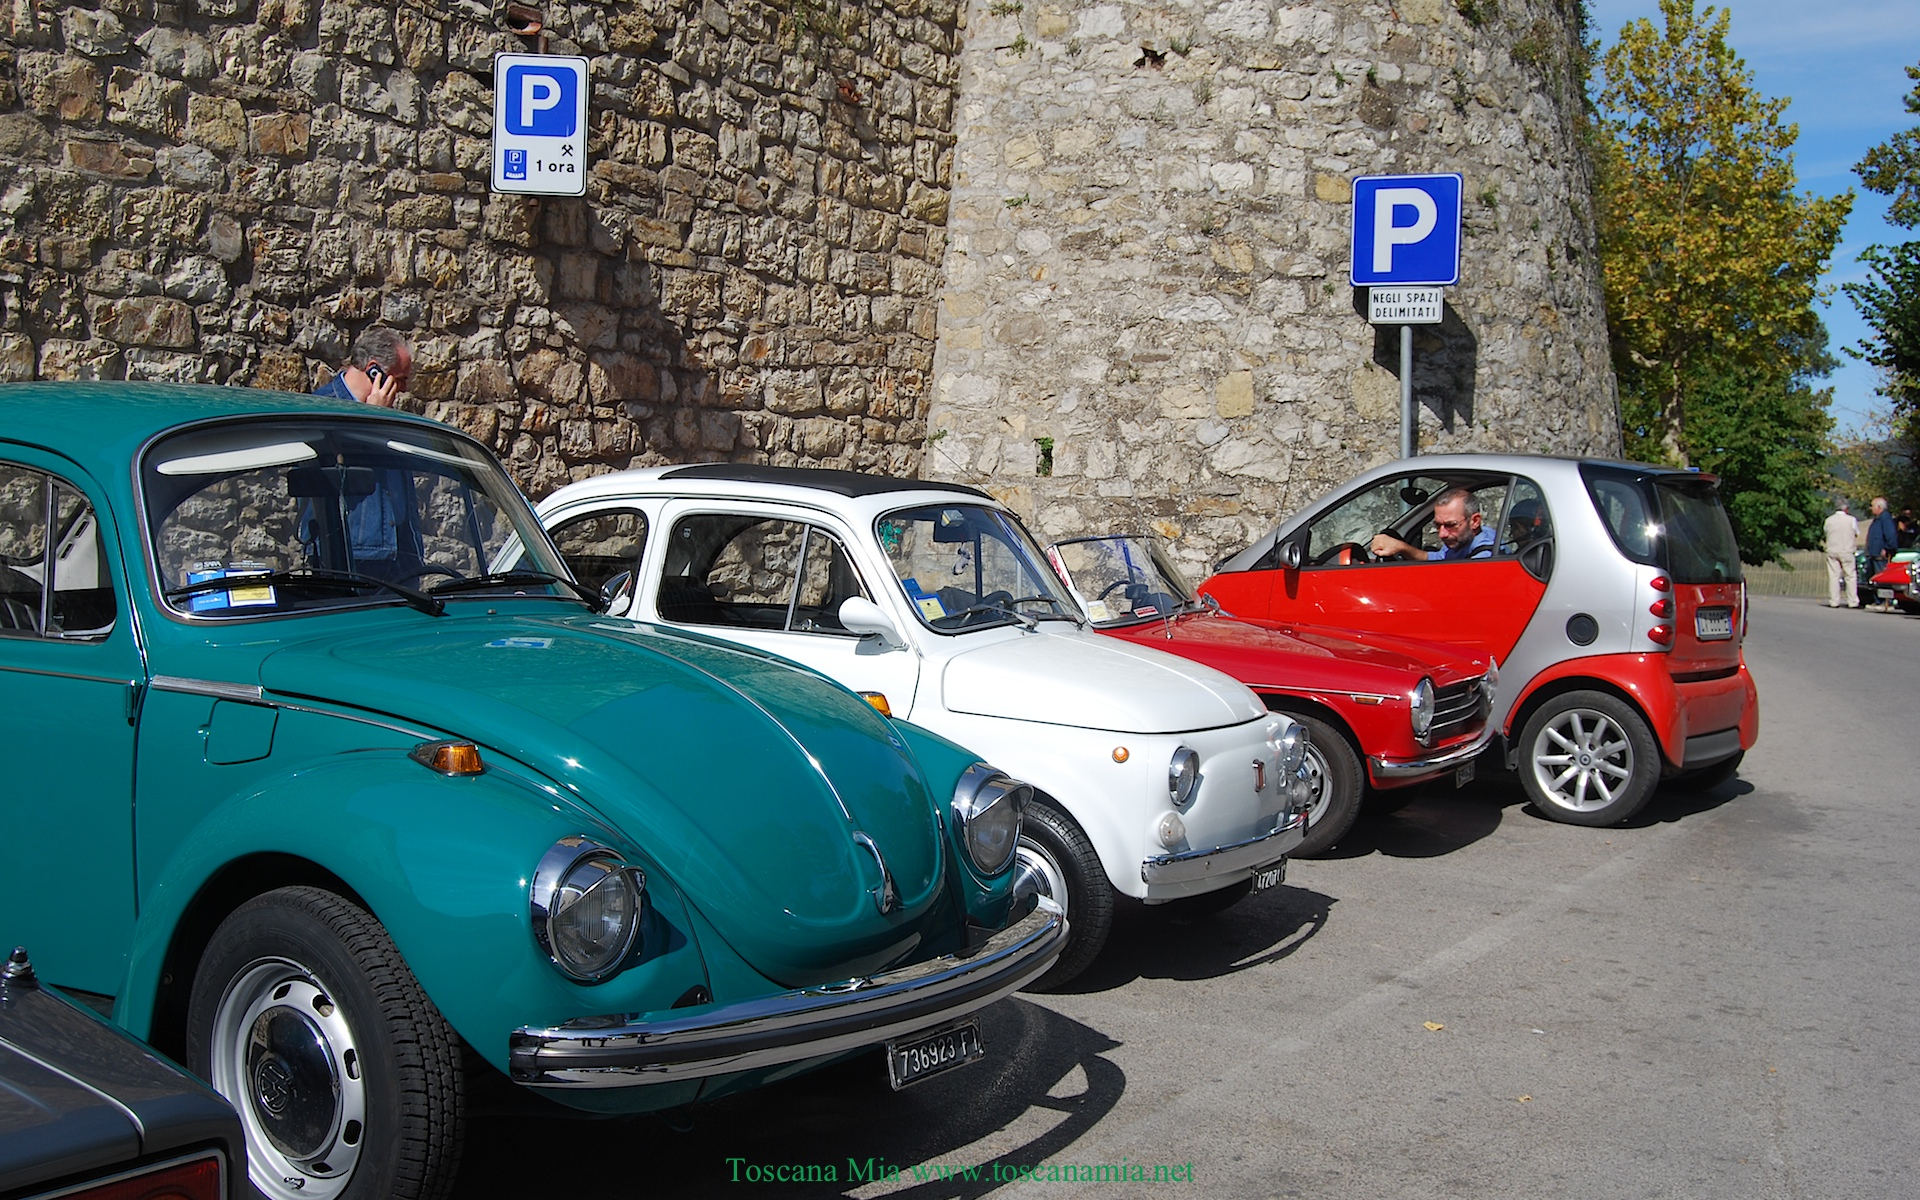 Parking in Radda in Chianti, Tuscany